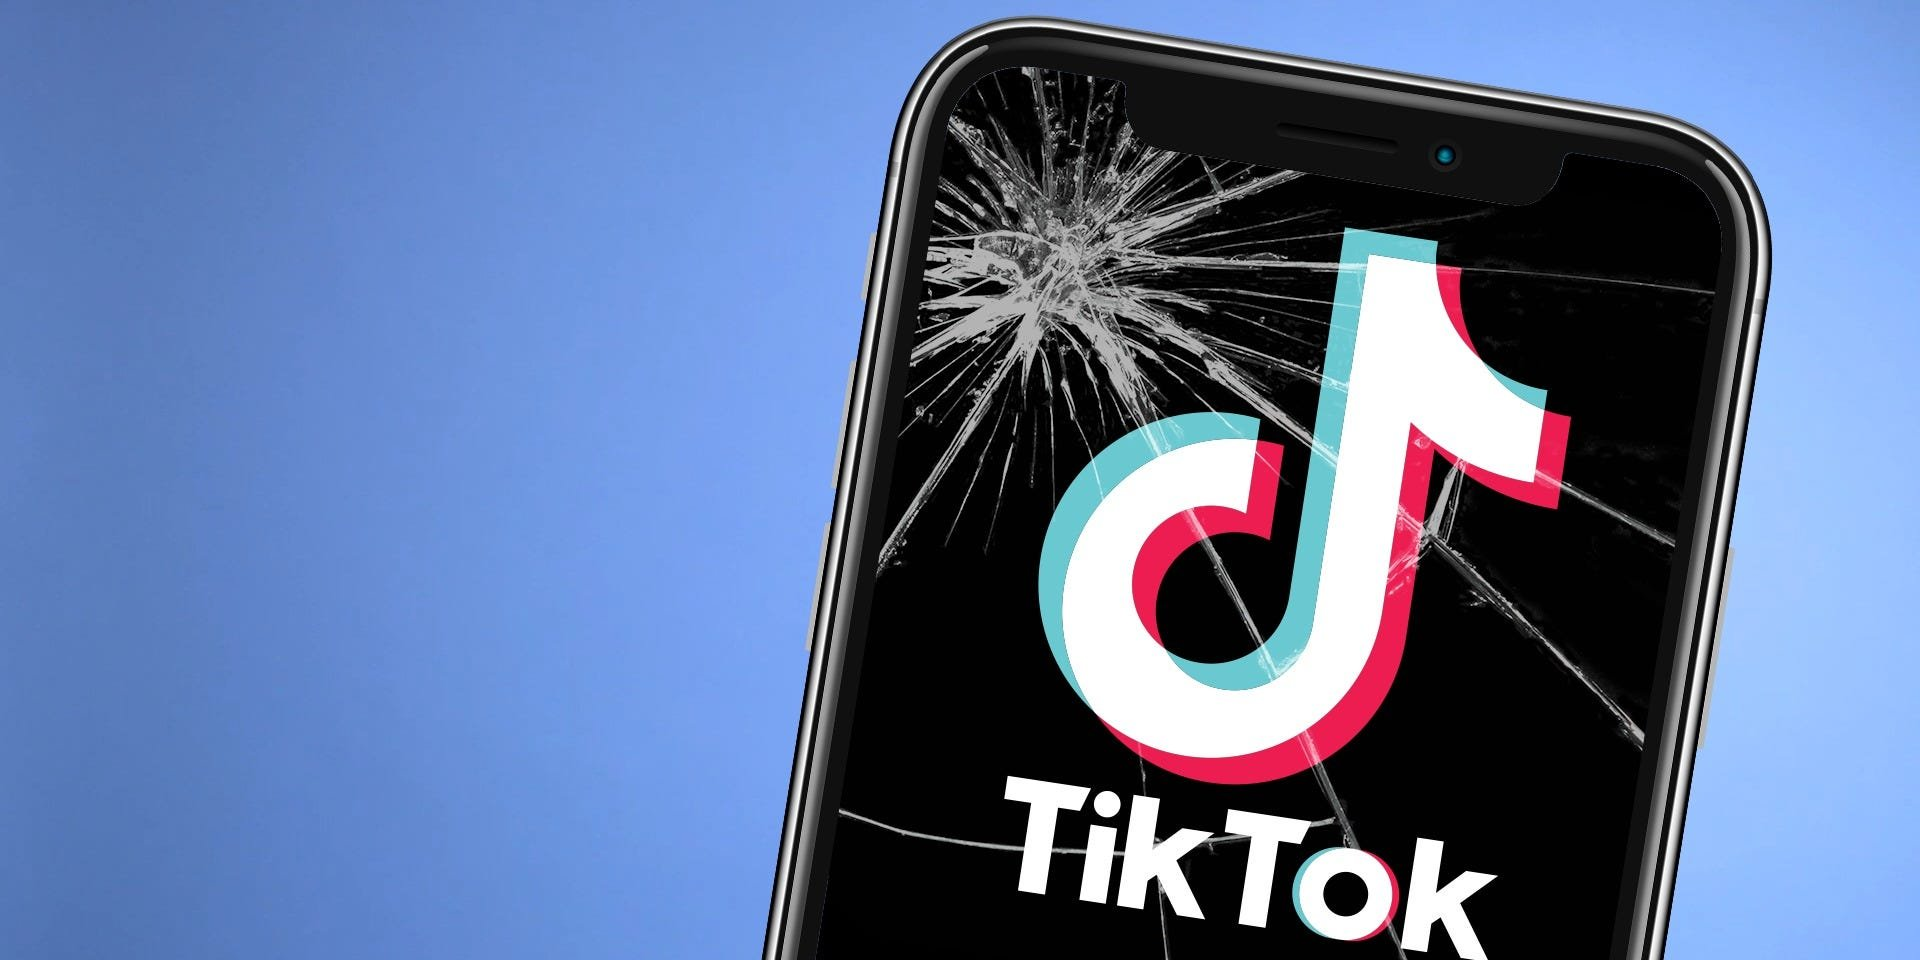 Microsoft adds $77 billion in market value after confirming talks to buy TikTok in the US (MSFT)